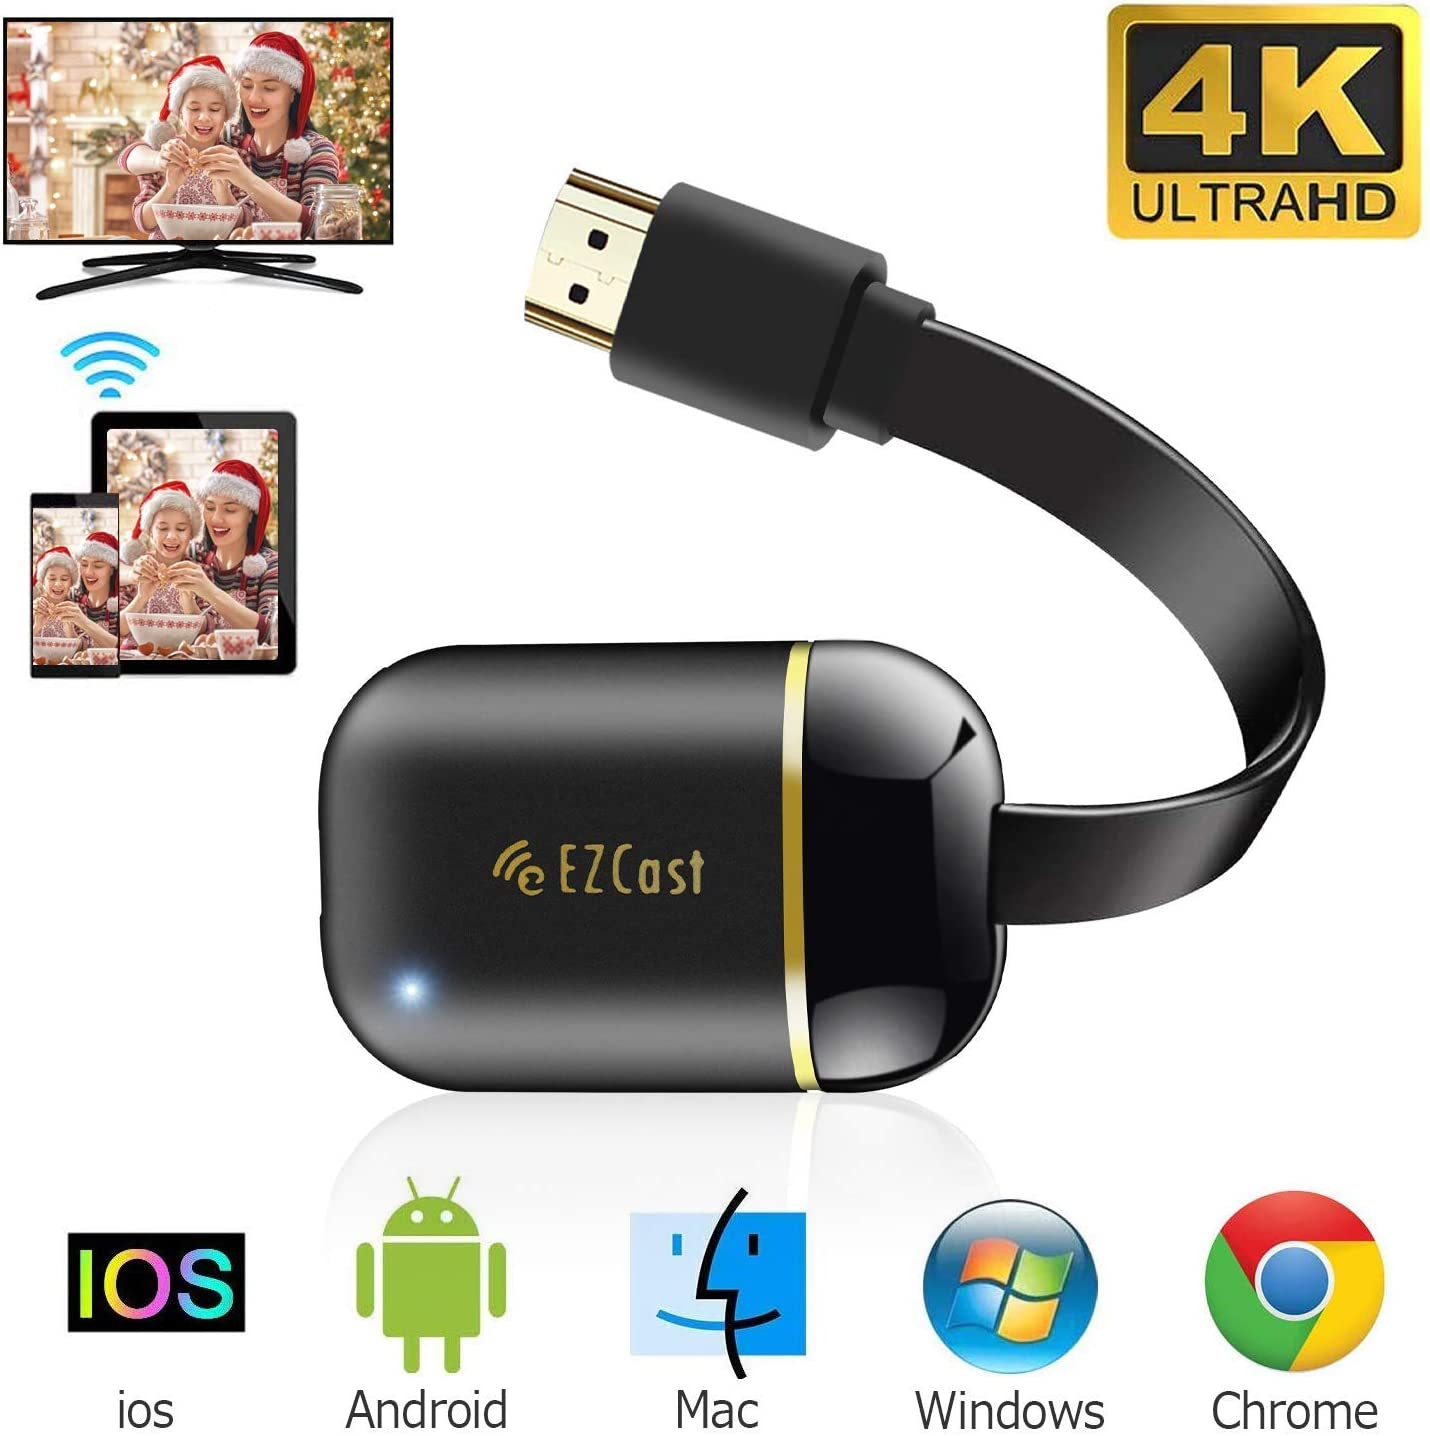 Adaptador de Pantalla Inalámbrico WiFi Dongle HDMI 5GHz + 2.4GHz Adaptador de Pantalla 4K+5G Mini Receptor Soporte Miracast DLNA Airplay para Android/iOS/Windos /TV/Windos/Mac/Proyector